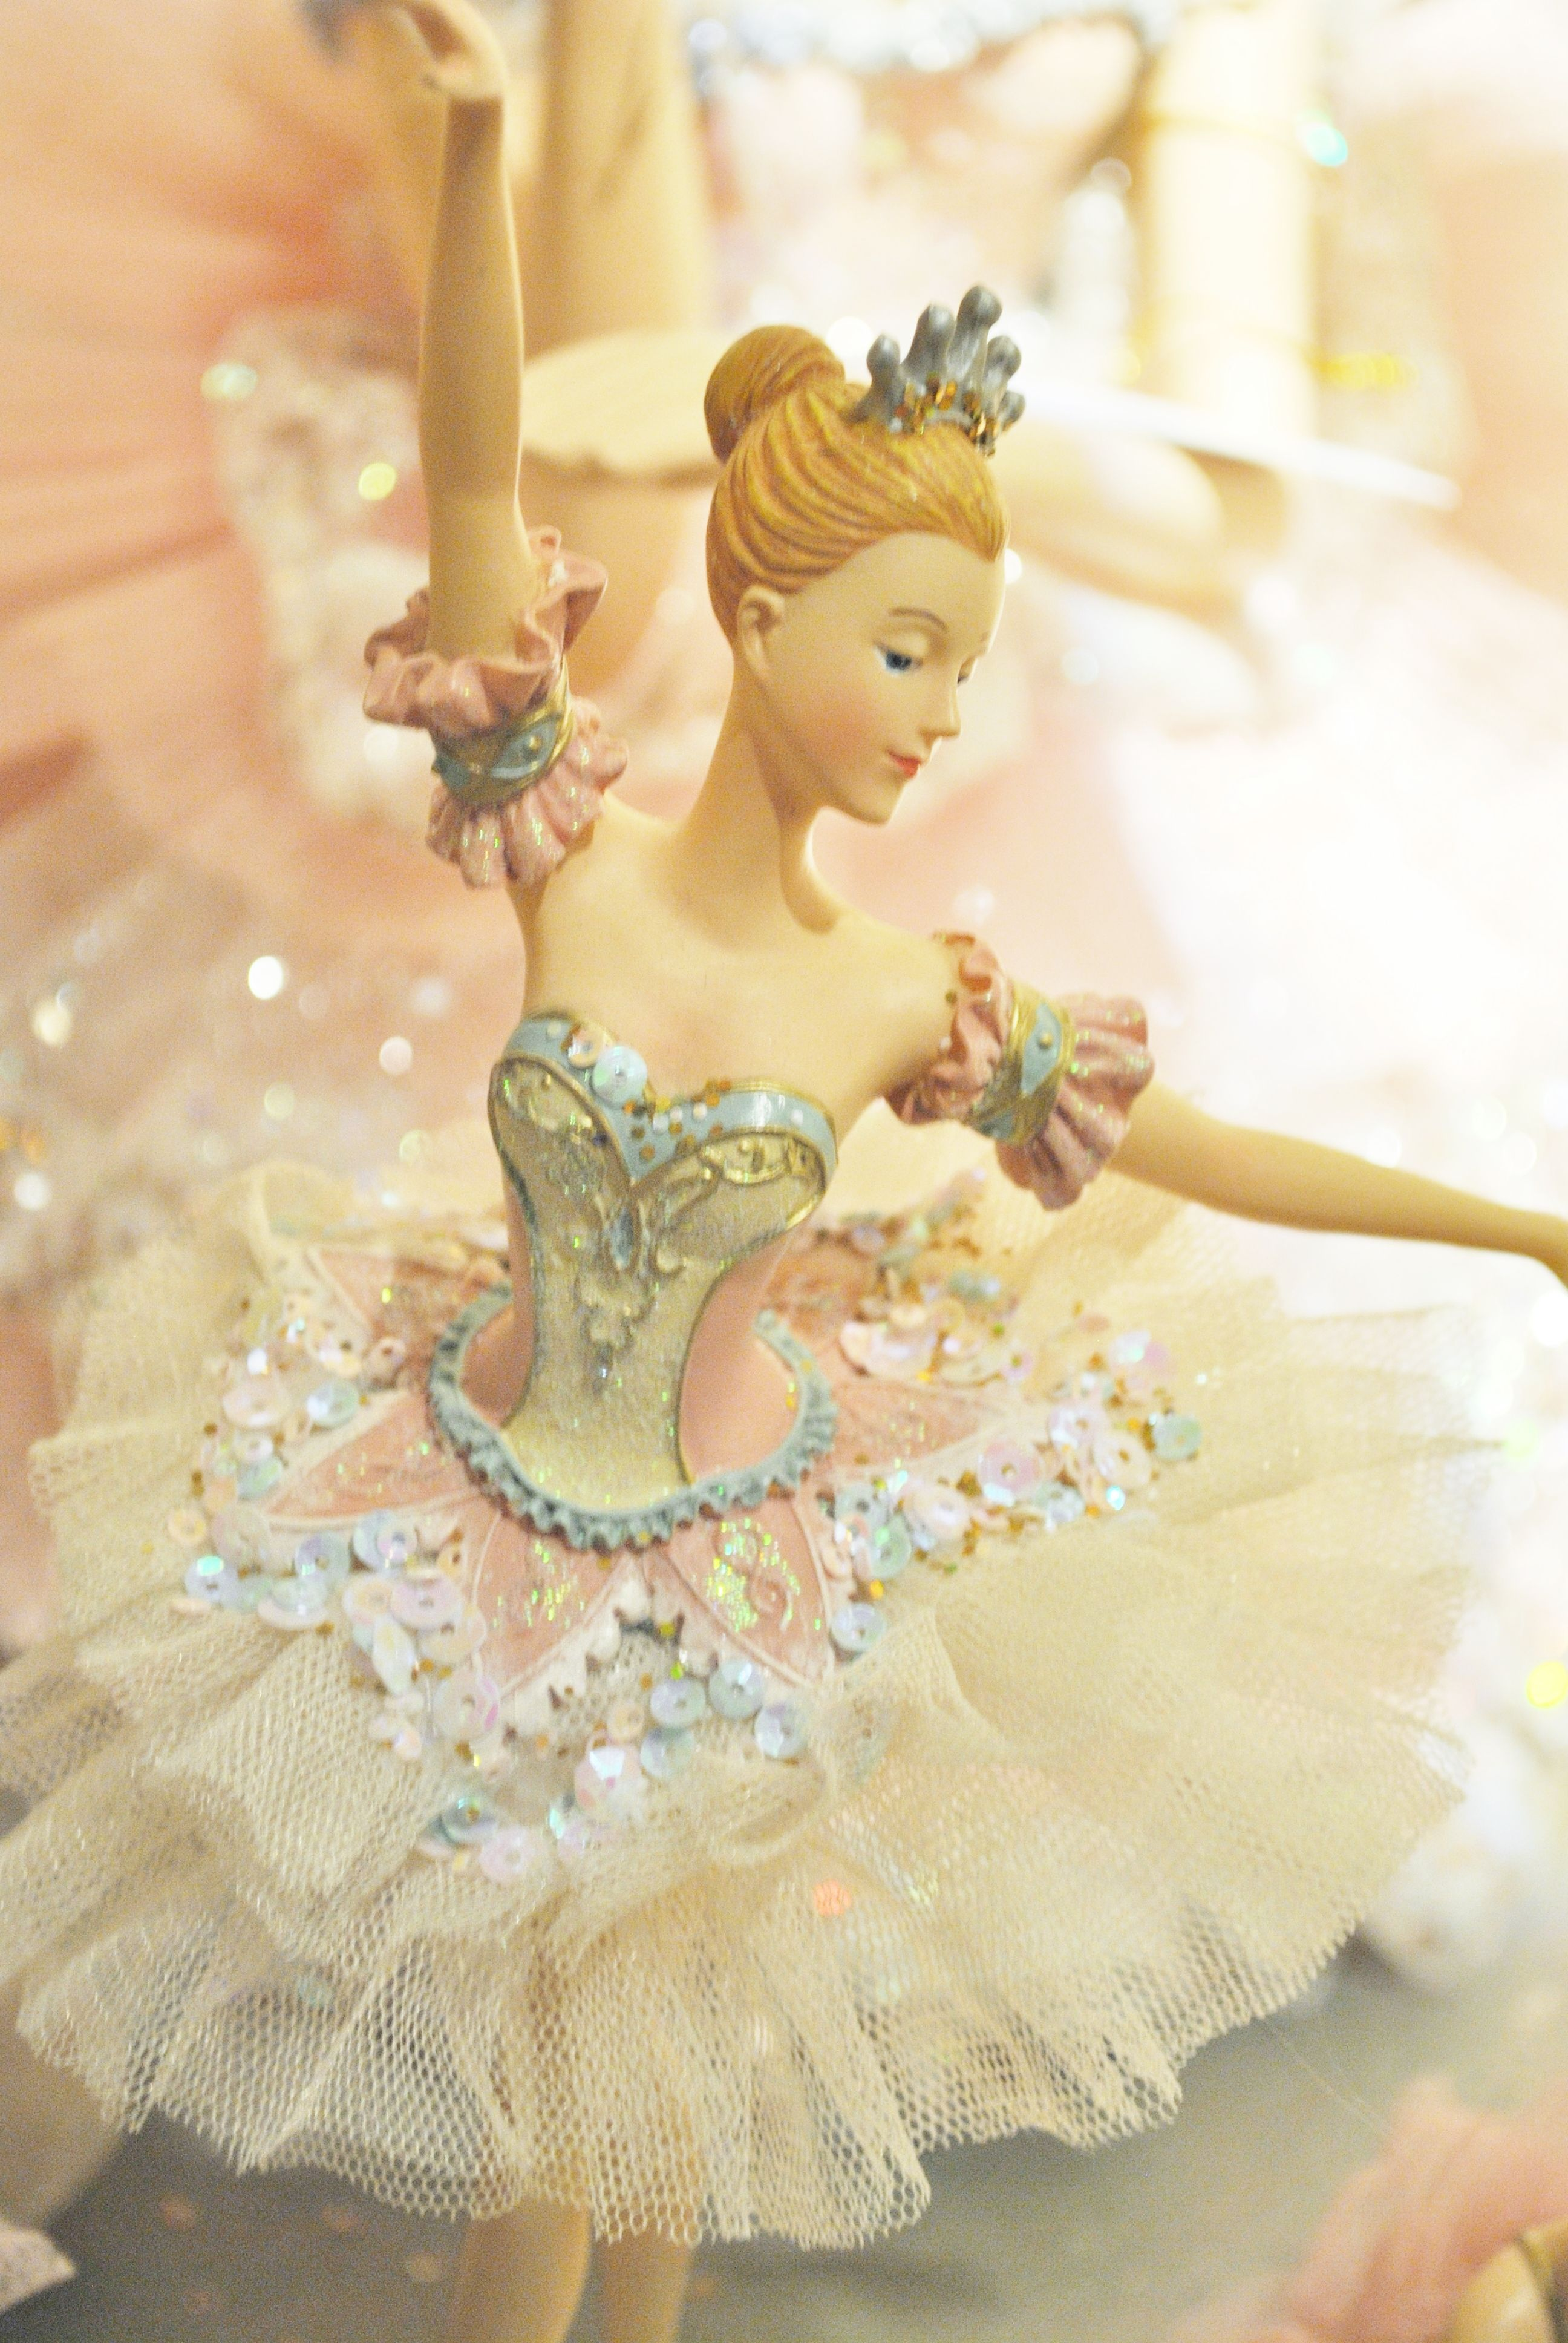 Decorazioni Natalizie Ballerine.Ballerina Collection By Goodwill Belgium Tulle Ballerina Albero